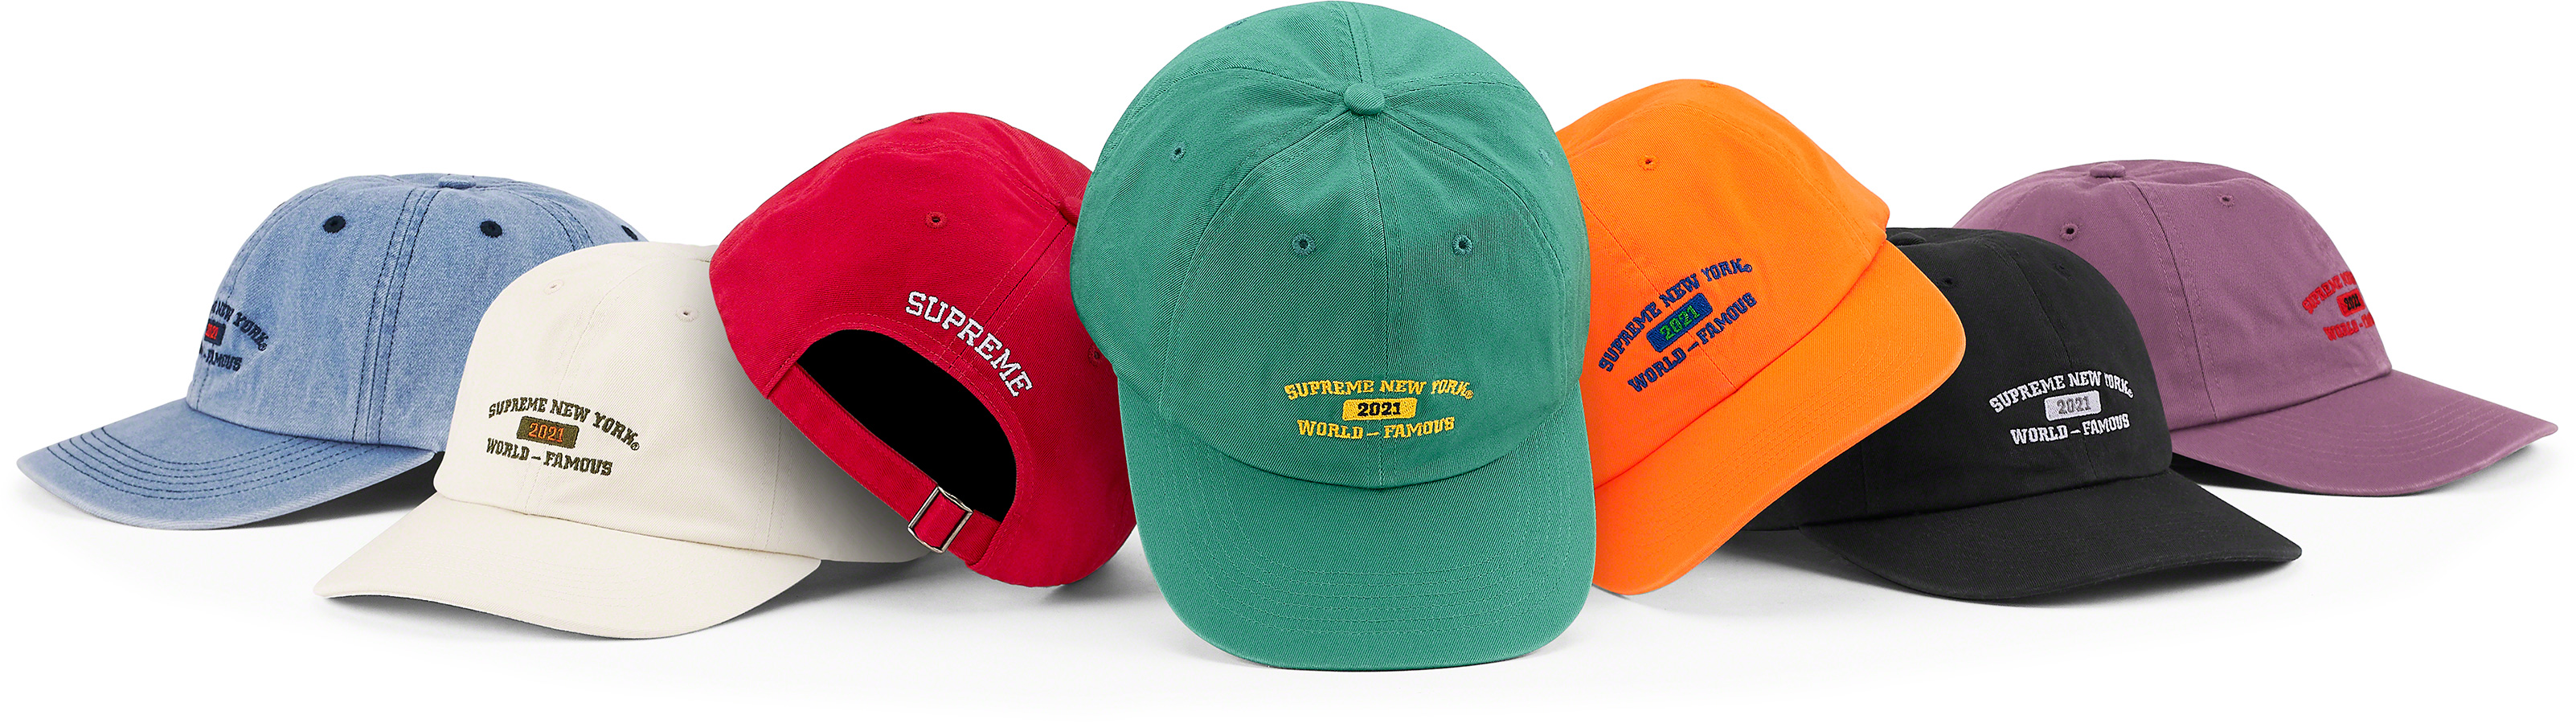 supreme-21ss-spring-summer-world-famous-6-panel